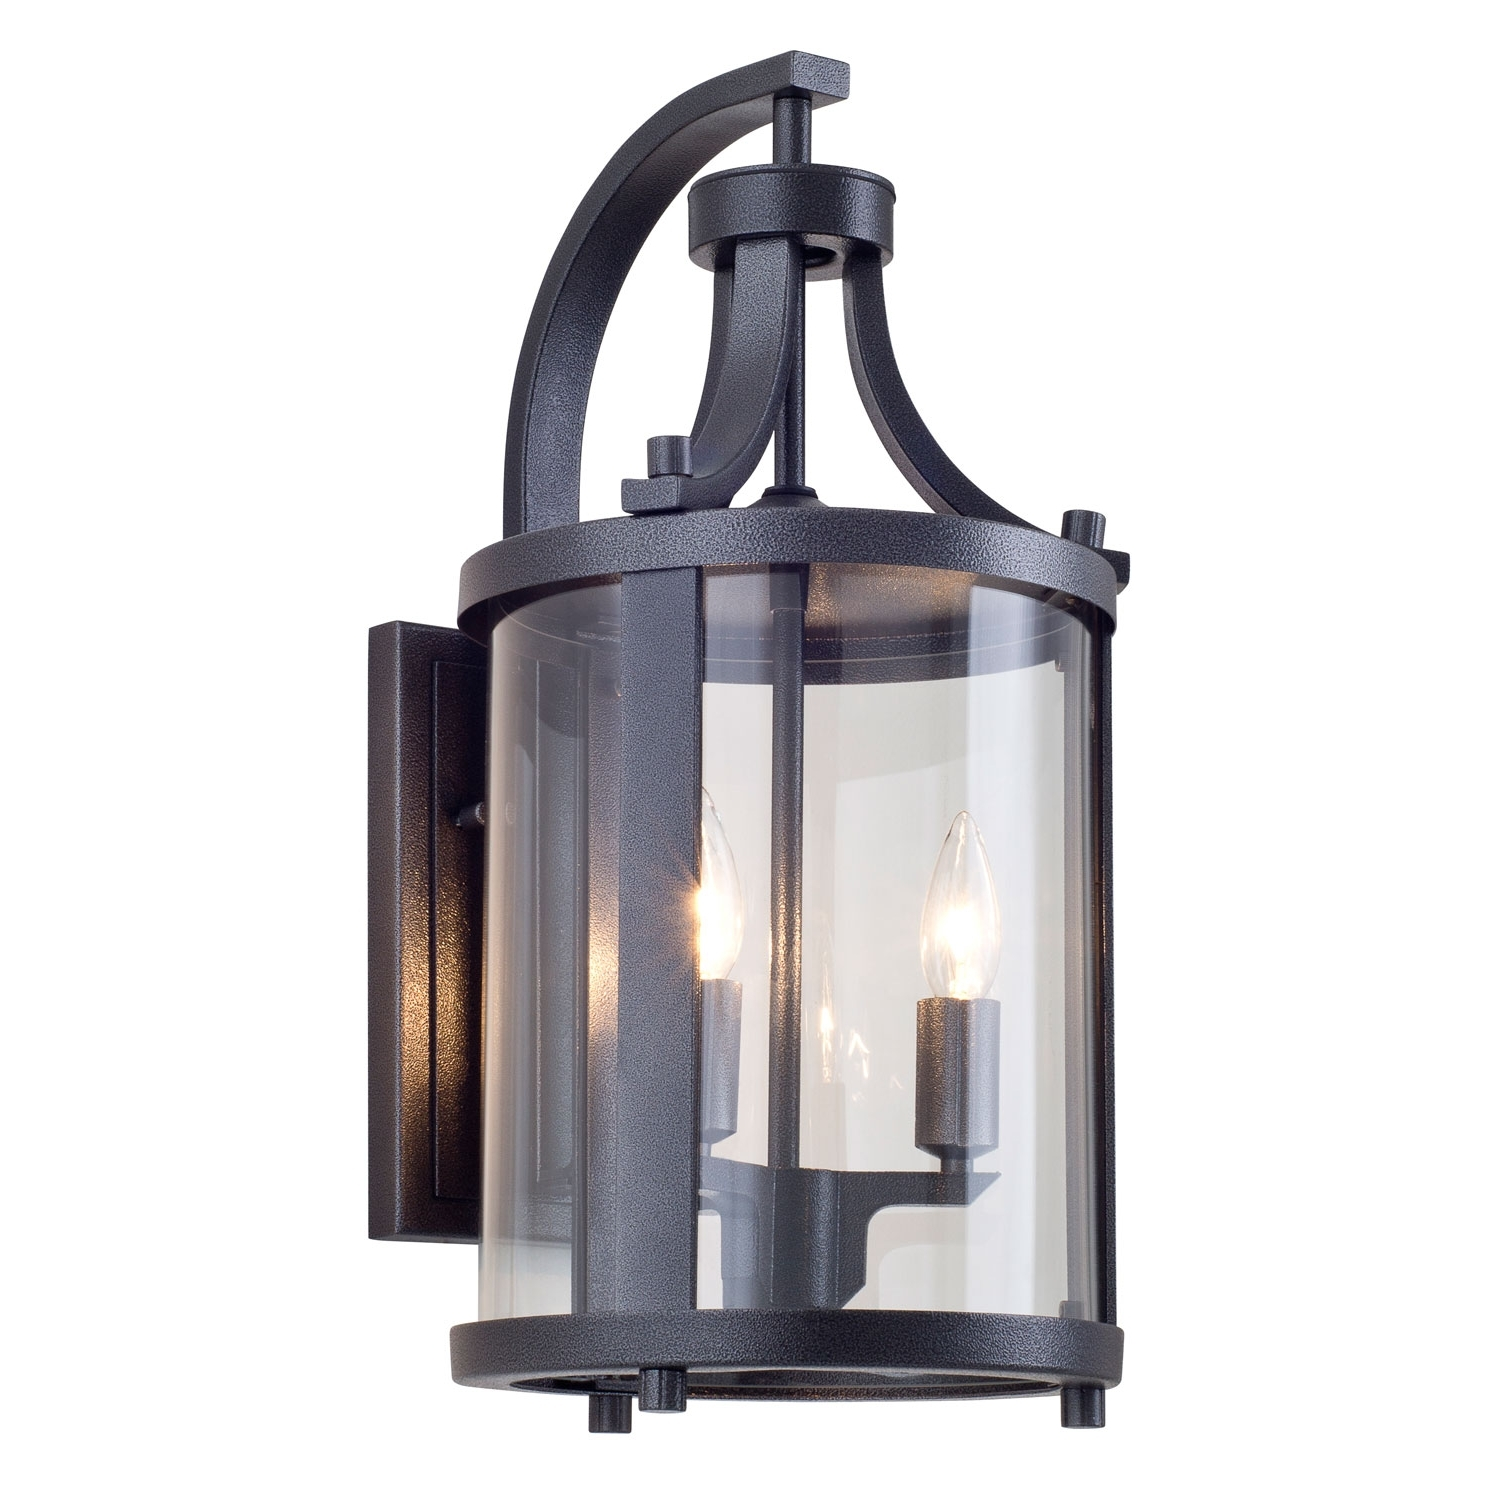 Famous Outdoor Wall Lighting Sets In Outdoor Wall Lighting On Sale (View 4 of 20)